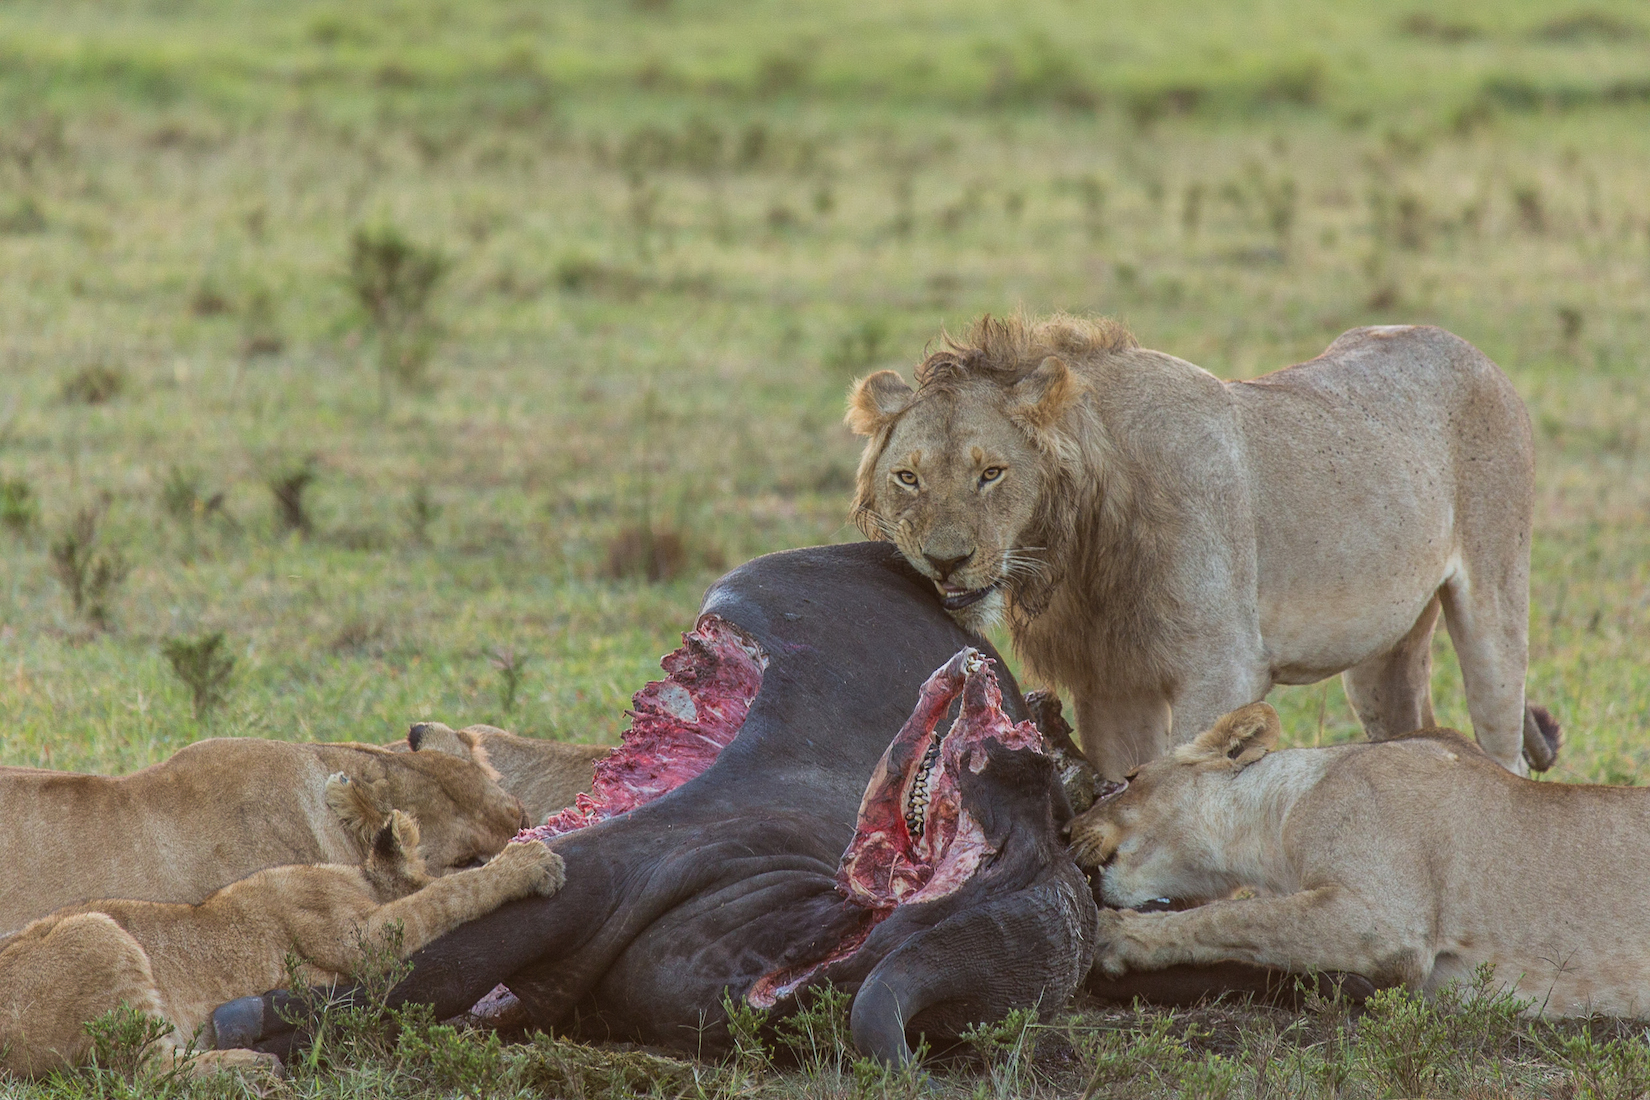 Buffalo versus lion